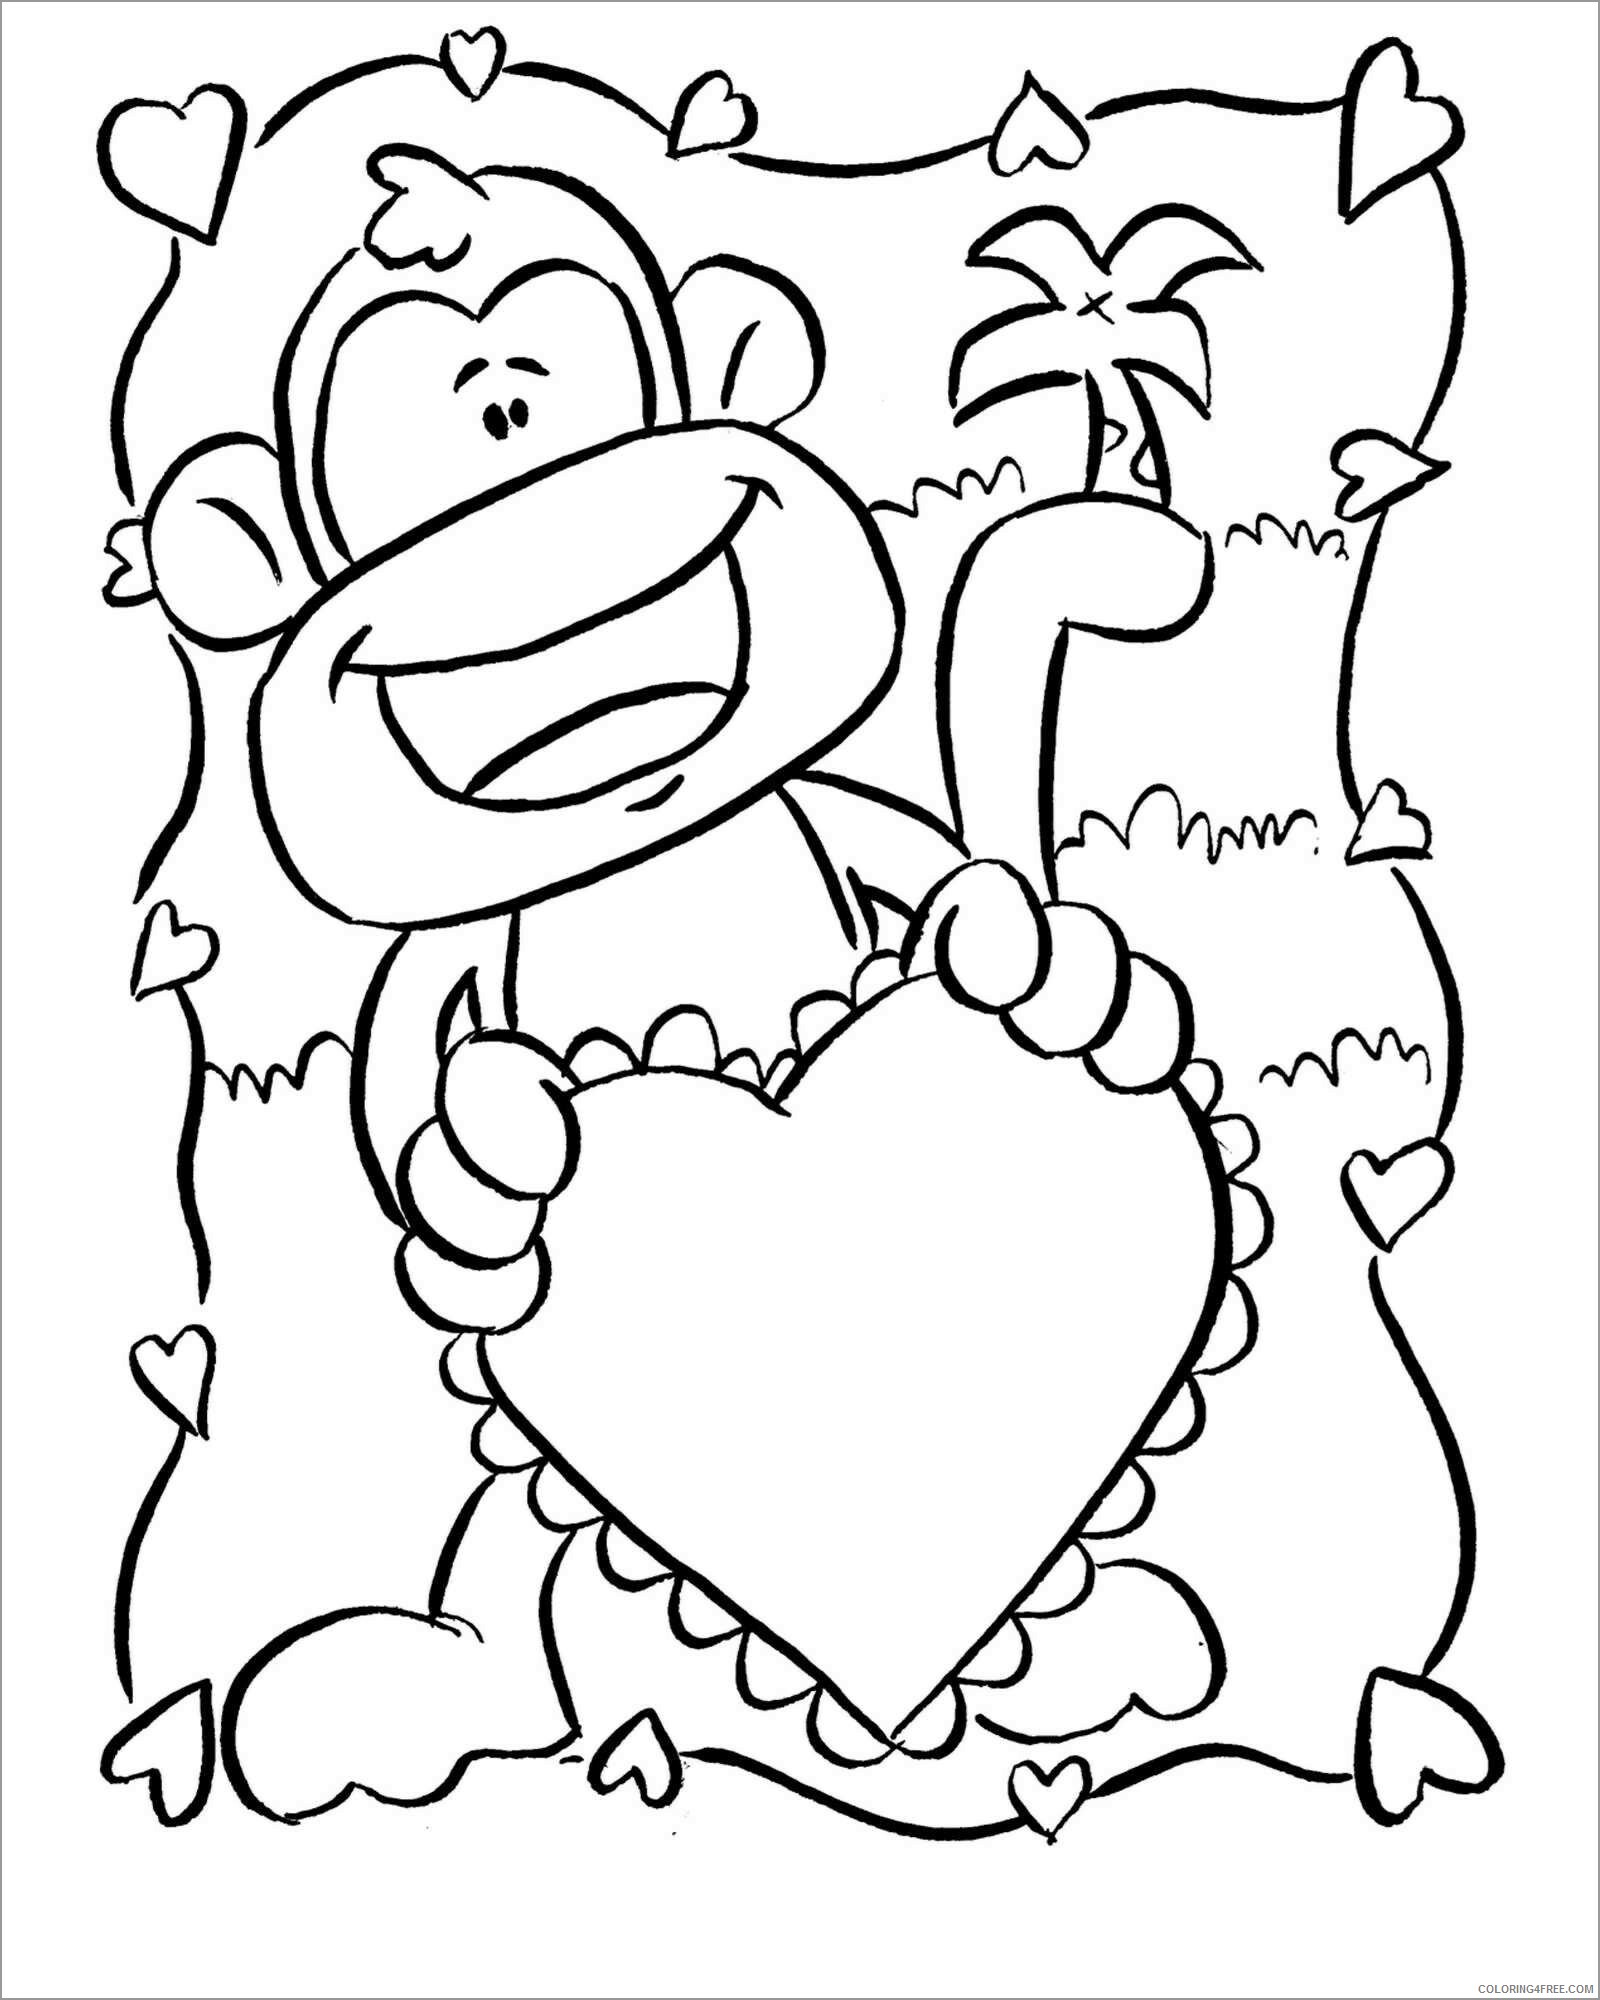 Monkey Coloring Pages Animal Printable Sheets cute baby monkeys 2021 3297 Coloring4free